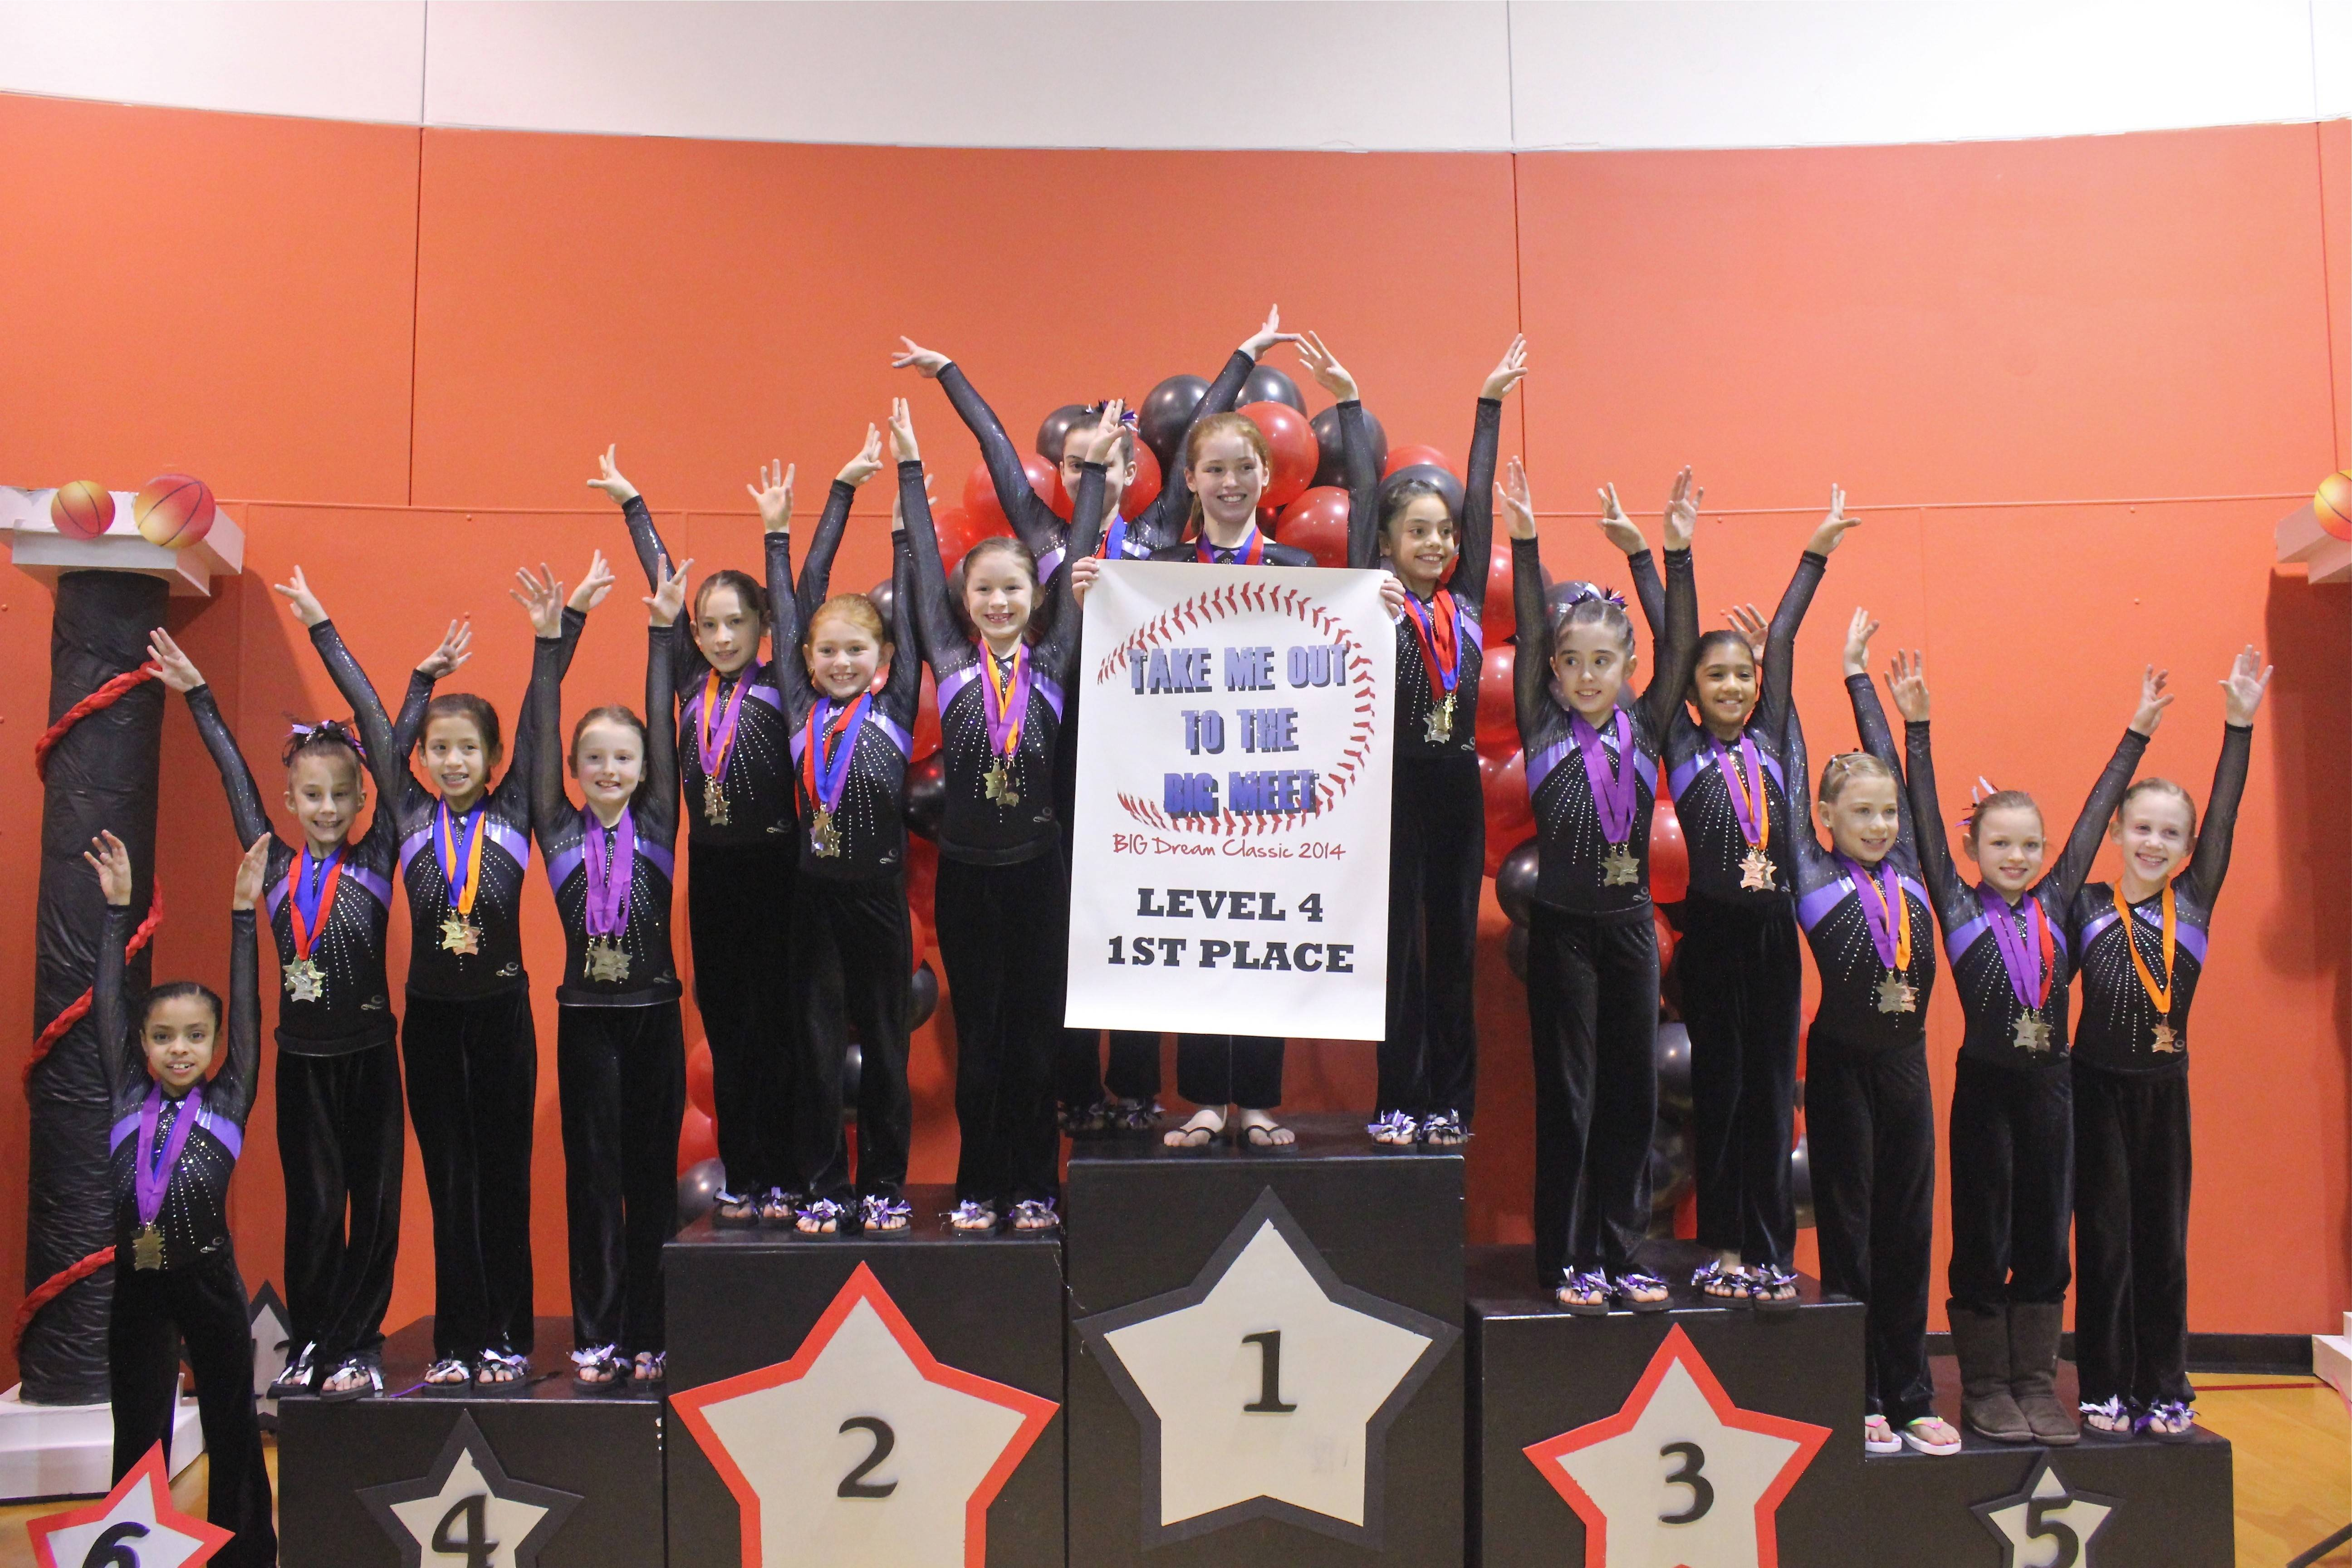 The Level 4 girls from Ultimate Gymnastics of Gurnee celebrate after a strong performance at the recent Big Dreams Classic in Burr Ridge. It was the fourth time the girls have taken the team title at a competitive meet this season.